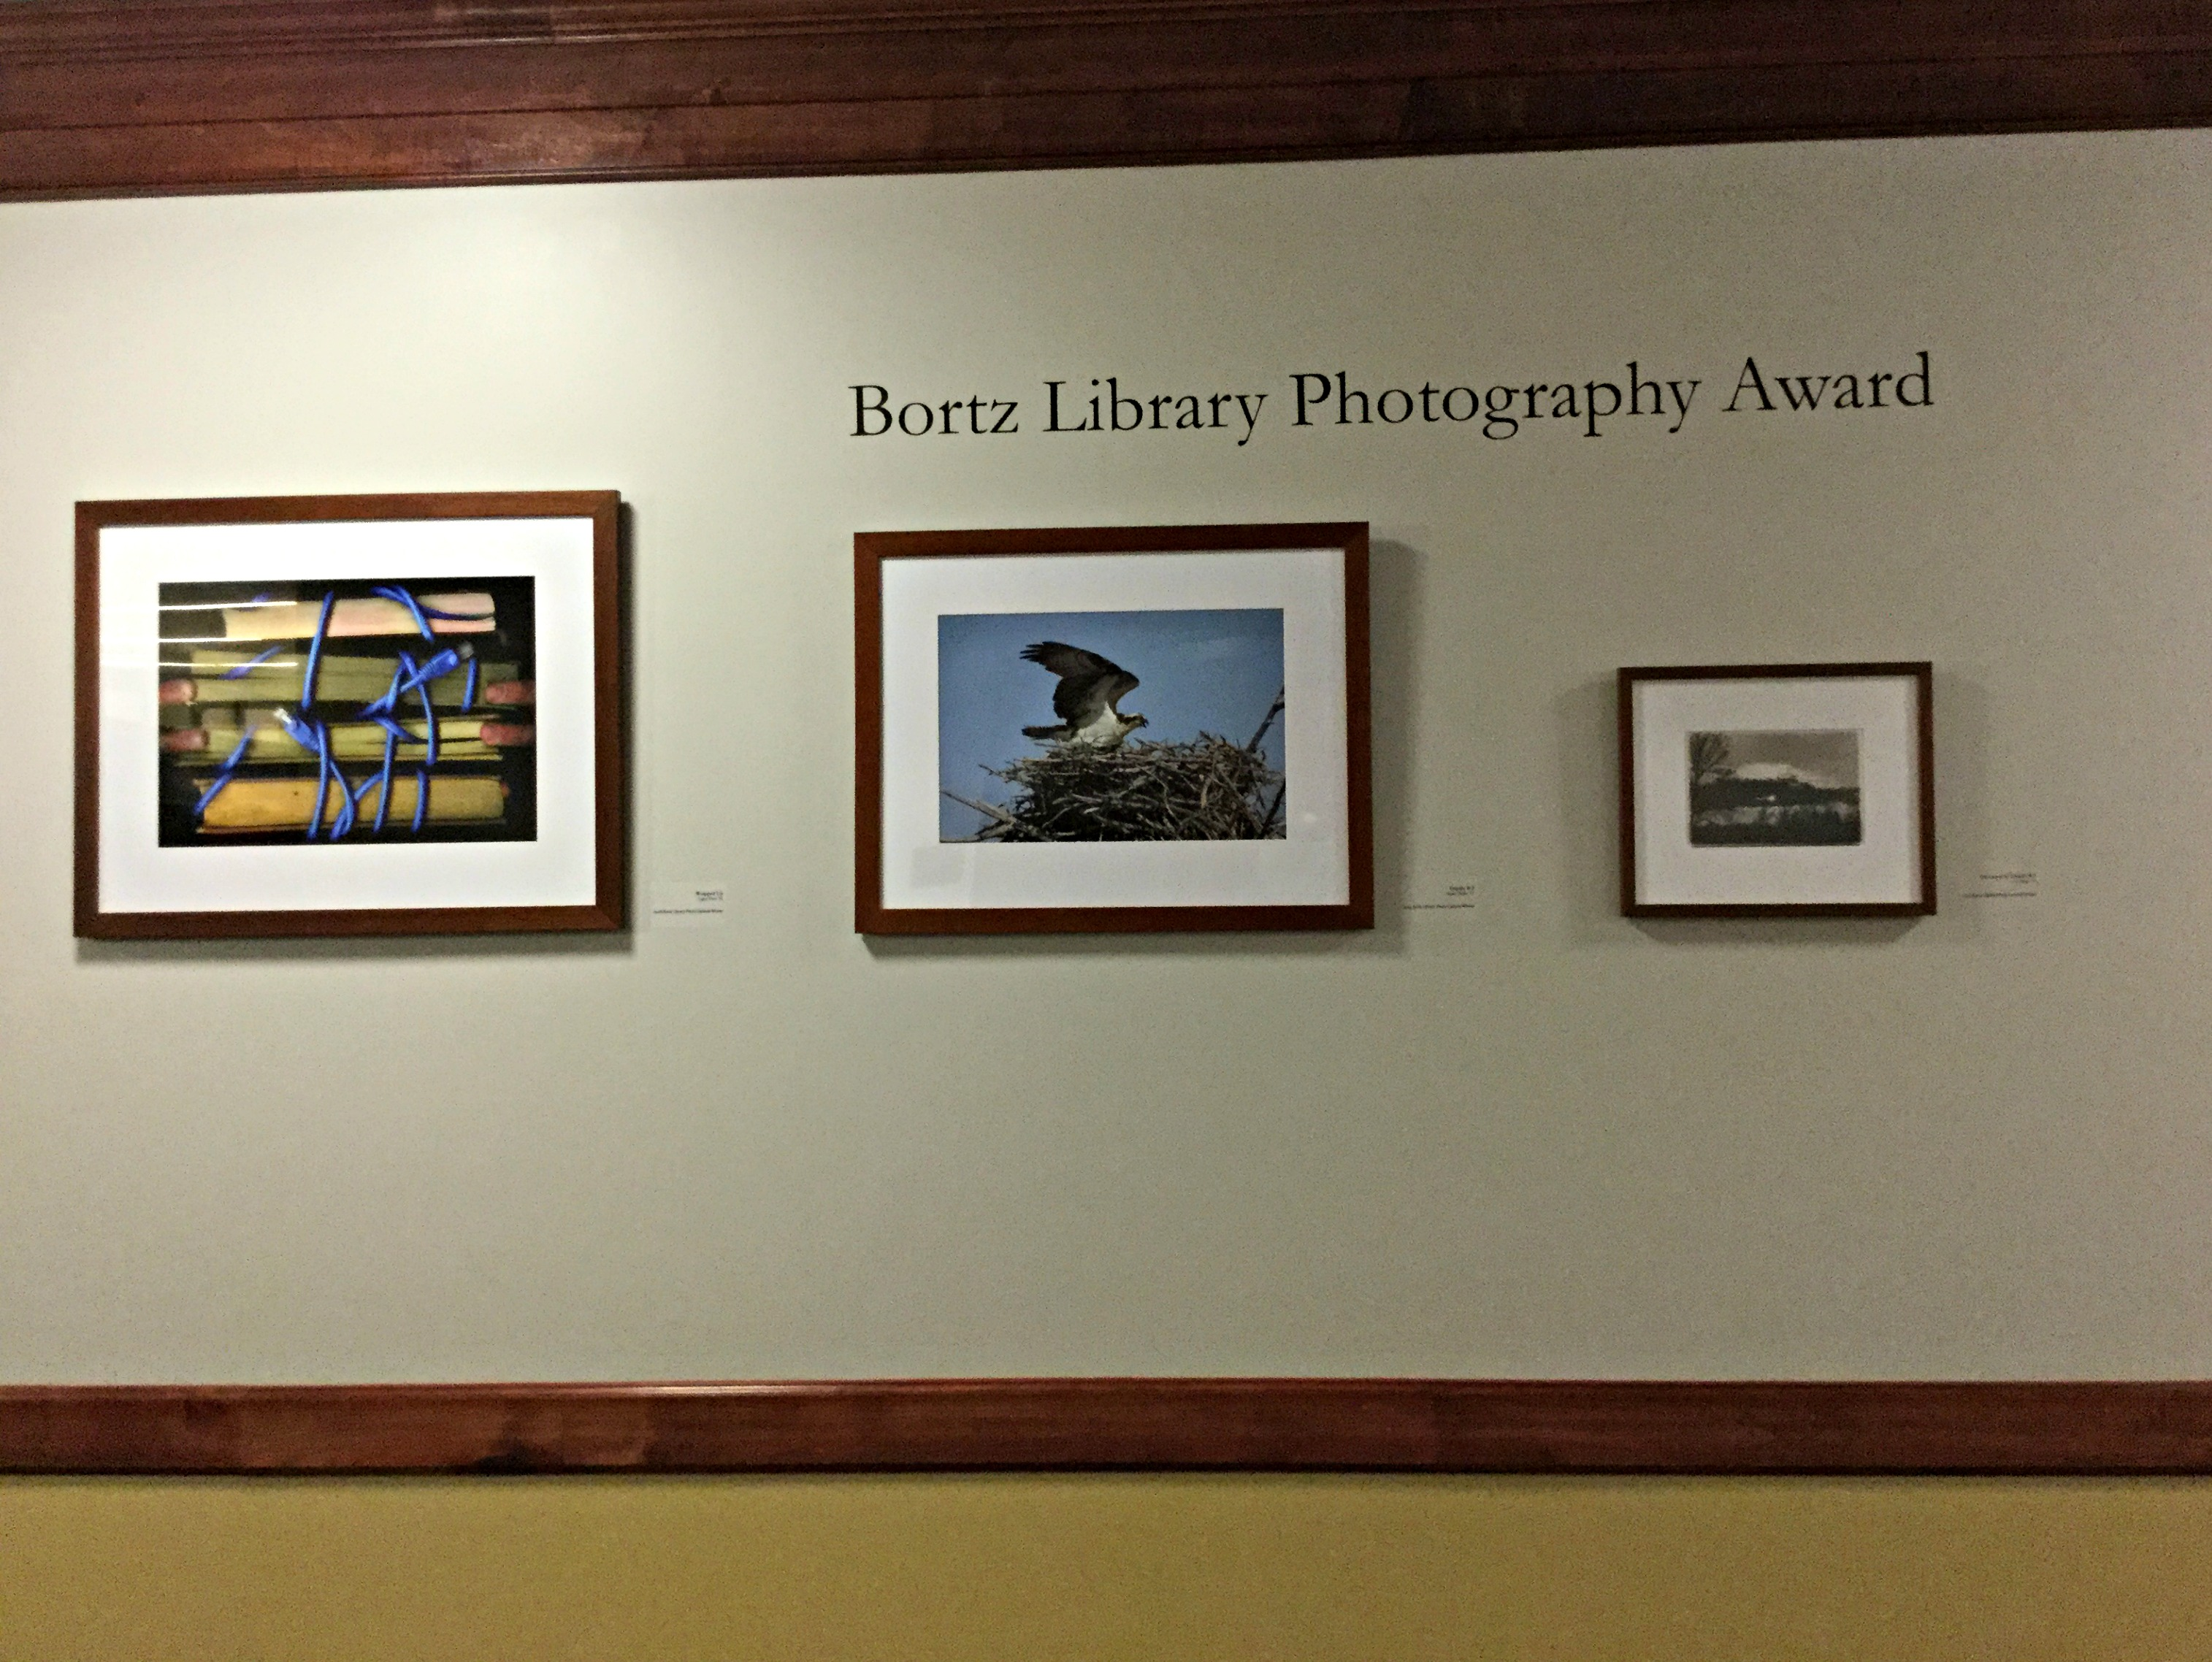 Student artwork hangs in the halls of the Library